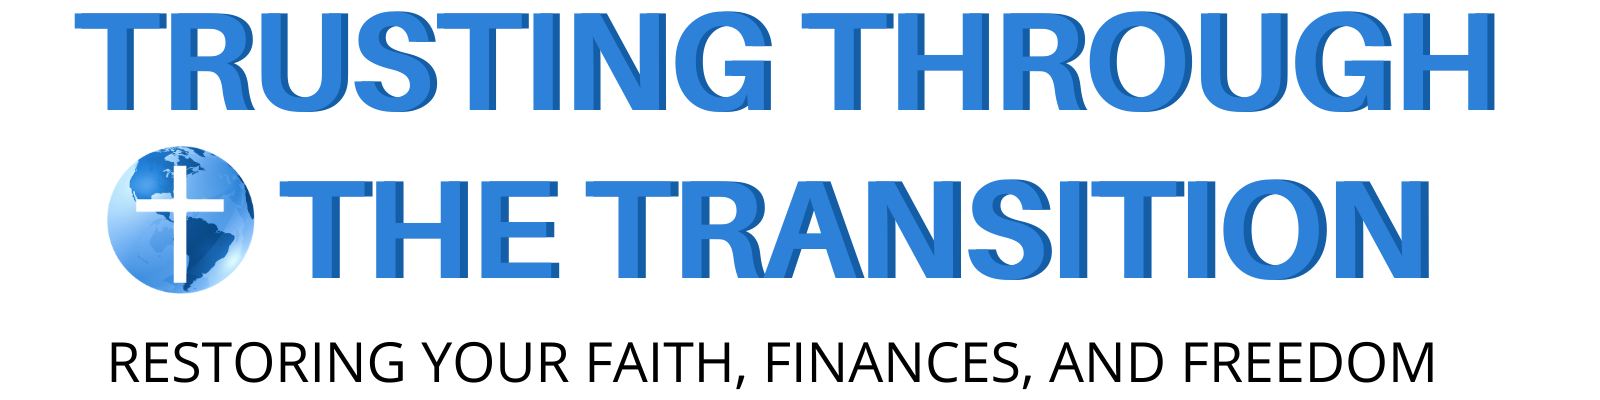 Trusting Through The Transition: Restoring Your Faith, Finances, and Freedom